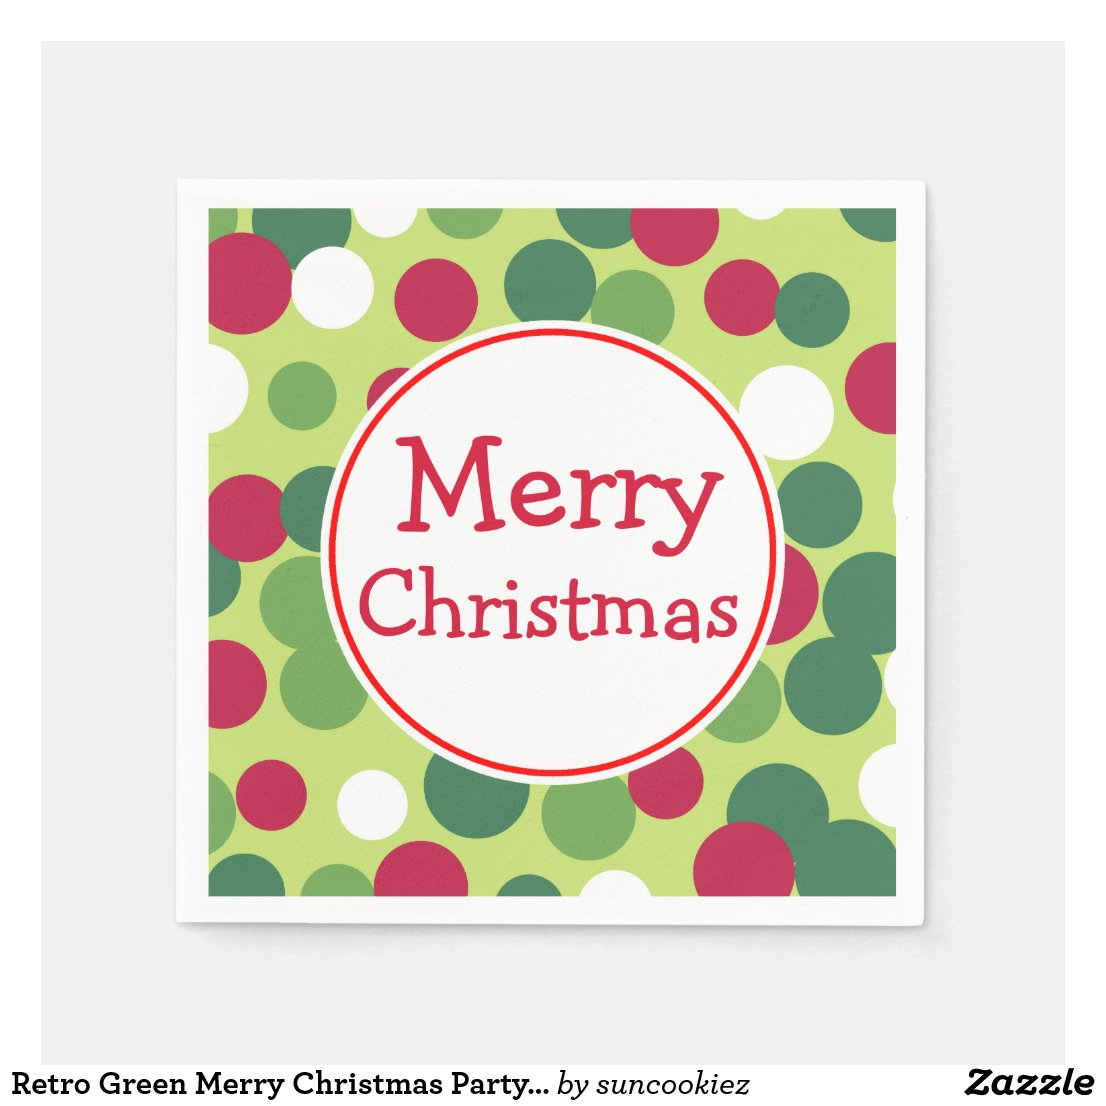 Retro Green Merry Christmas Party Napkins